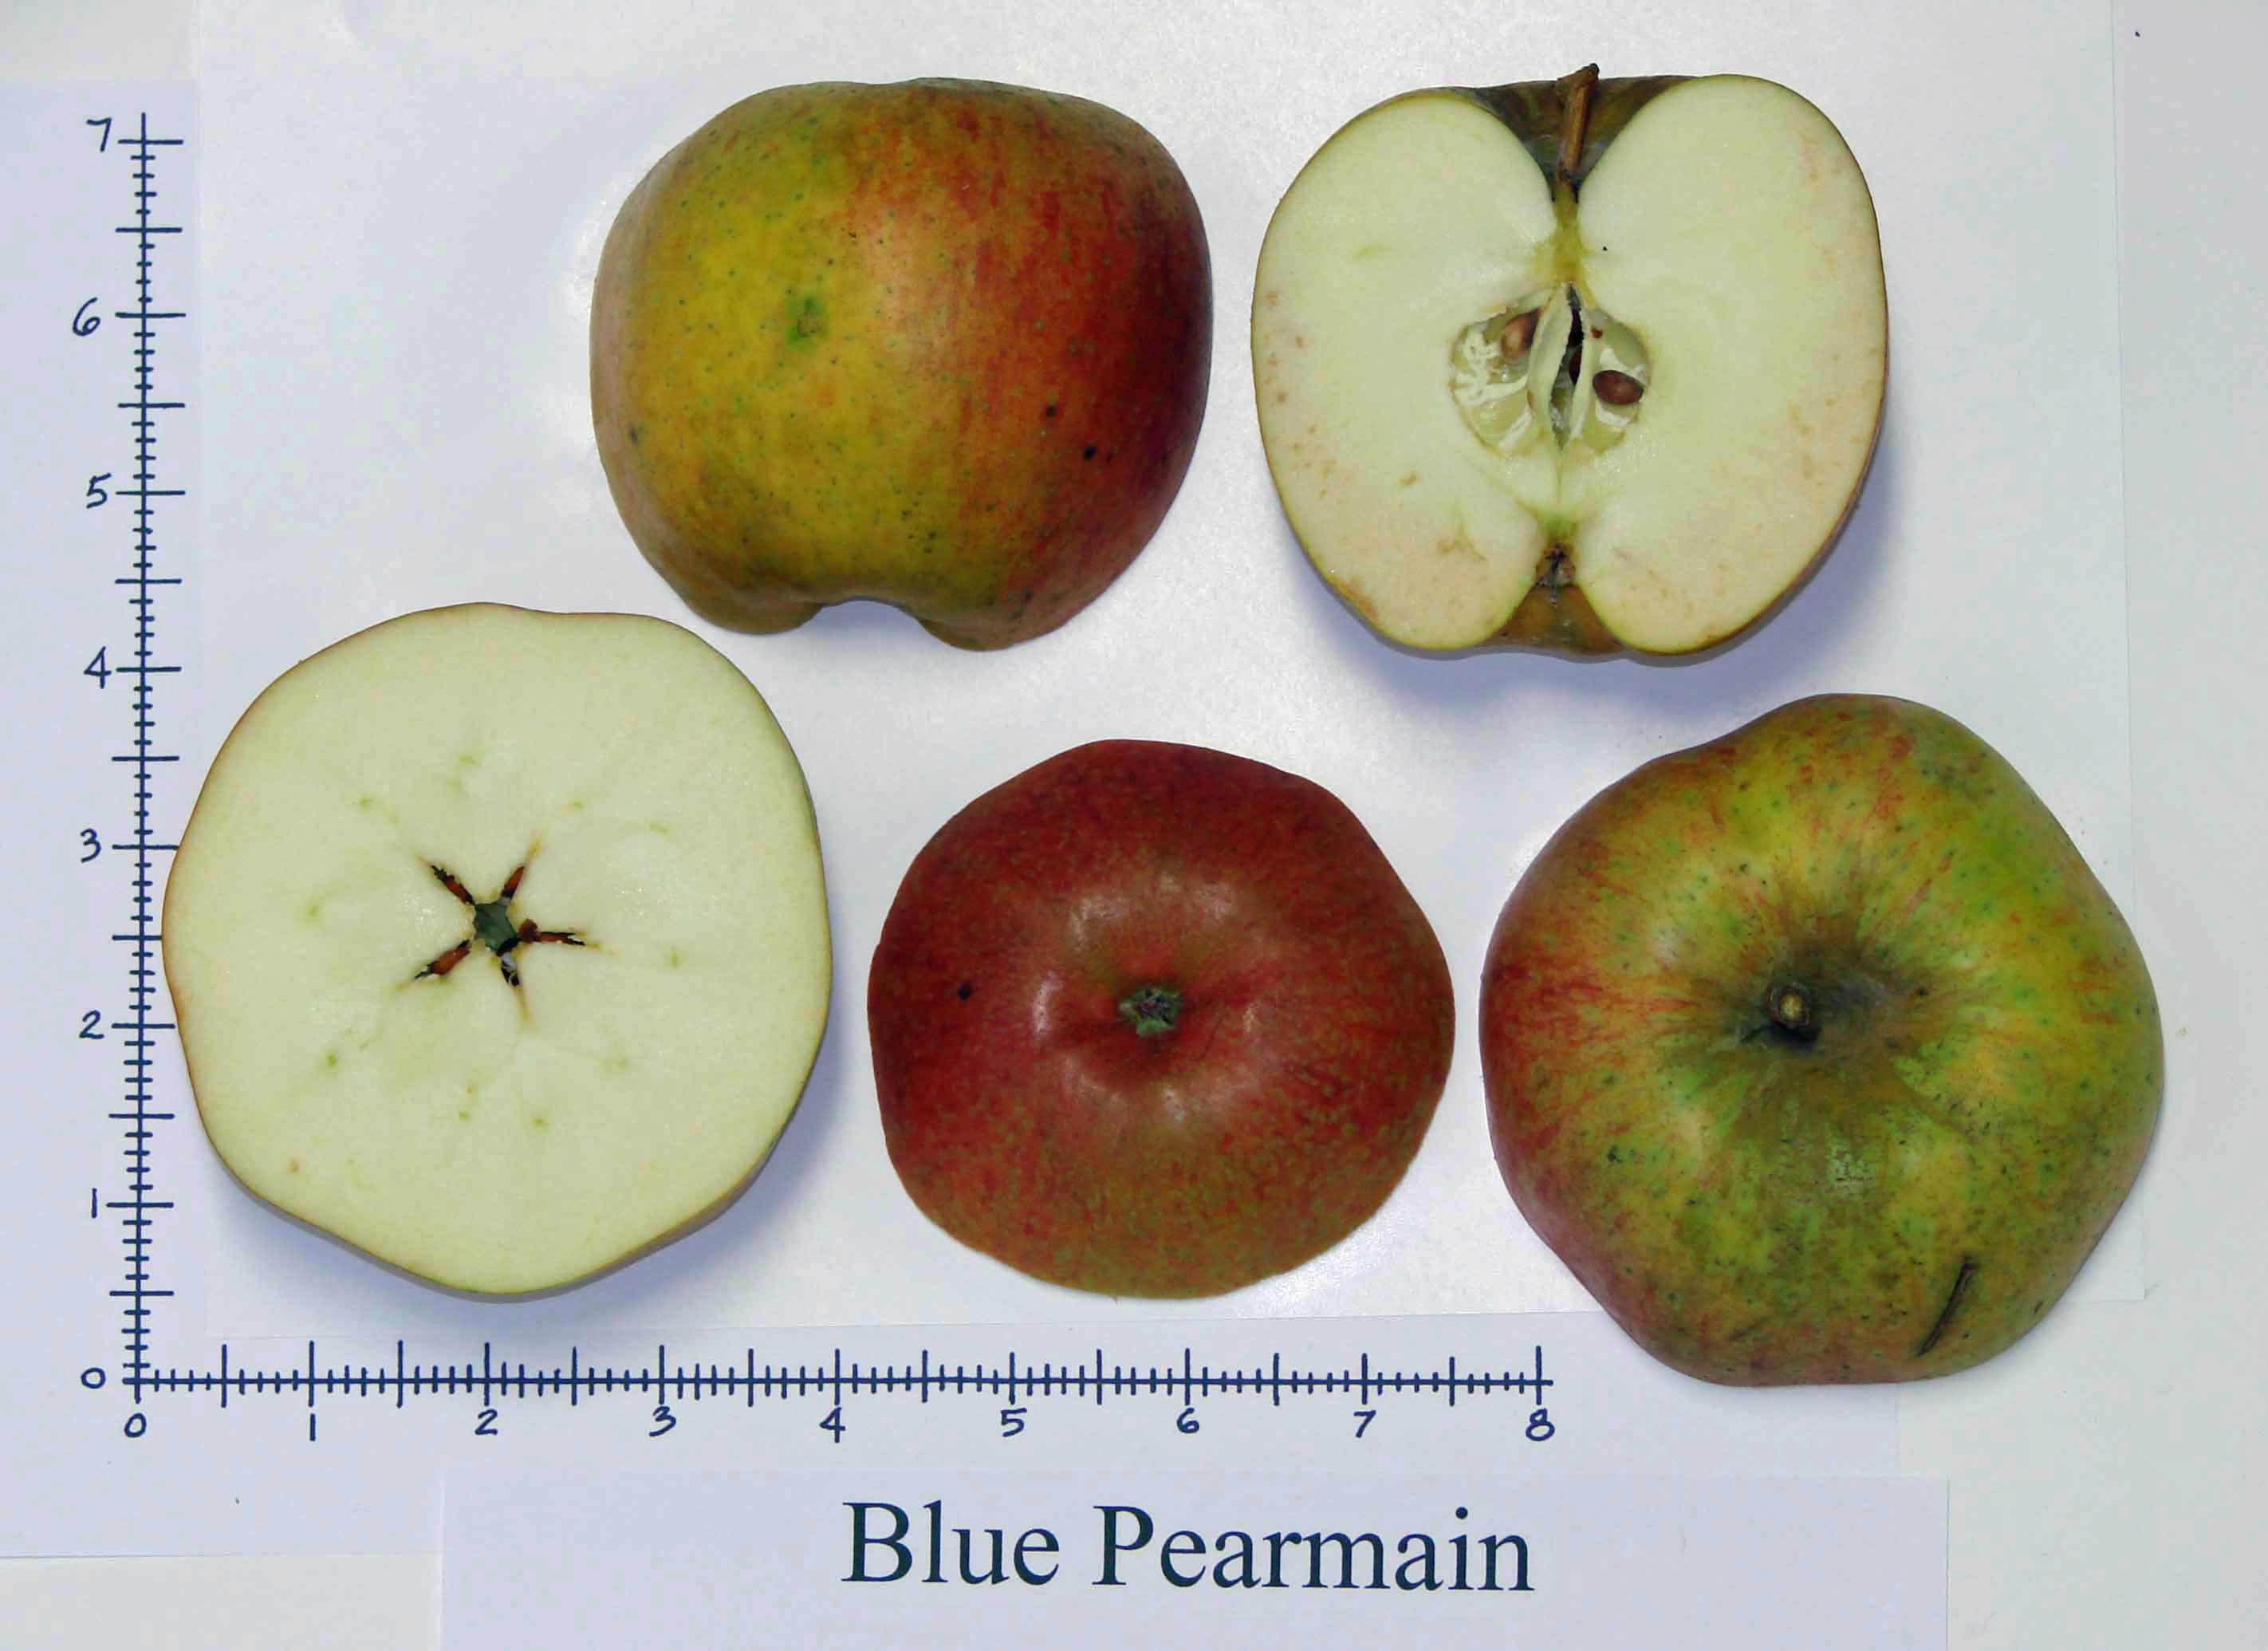 Blue Pearmain